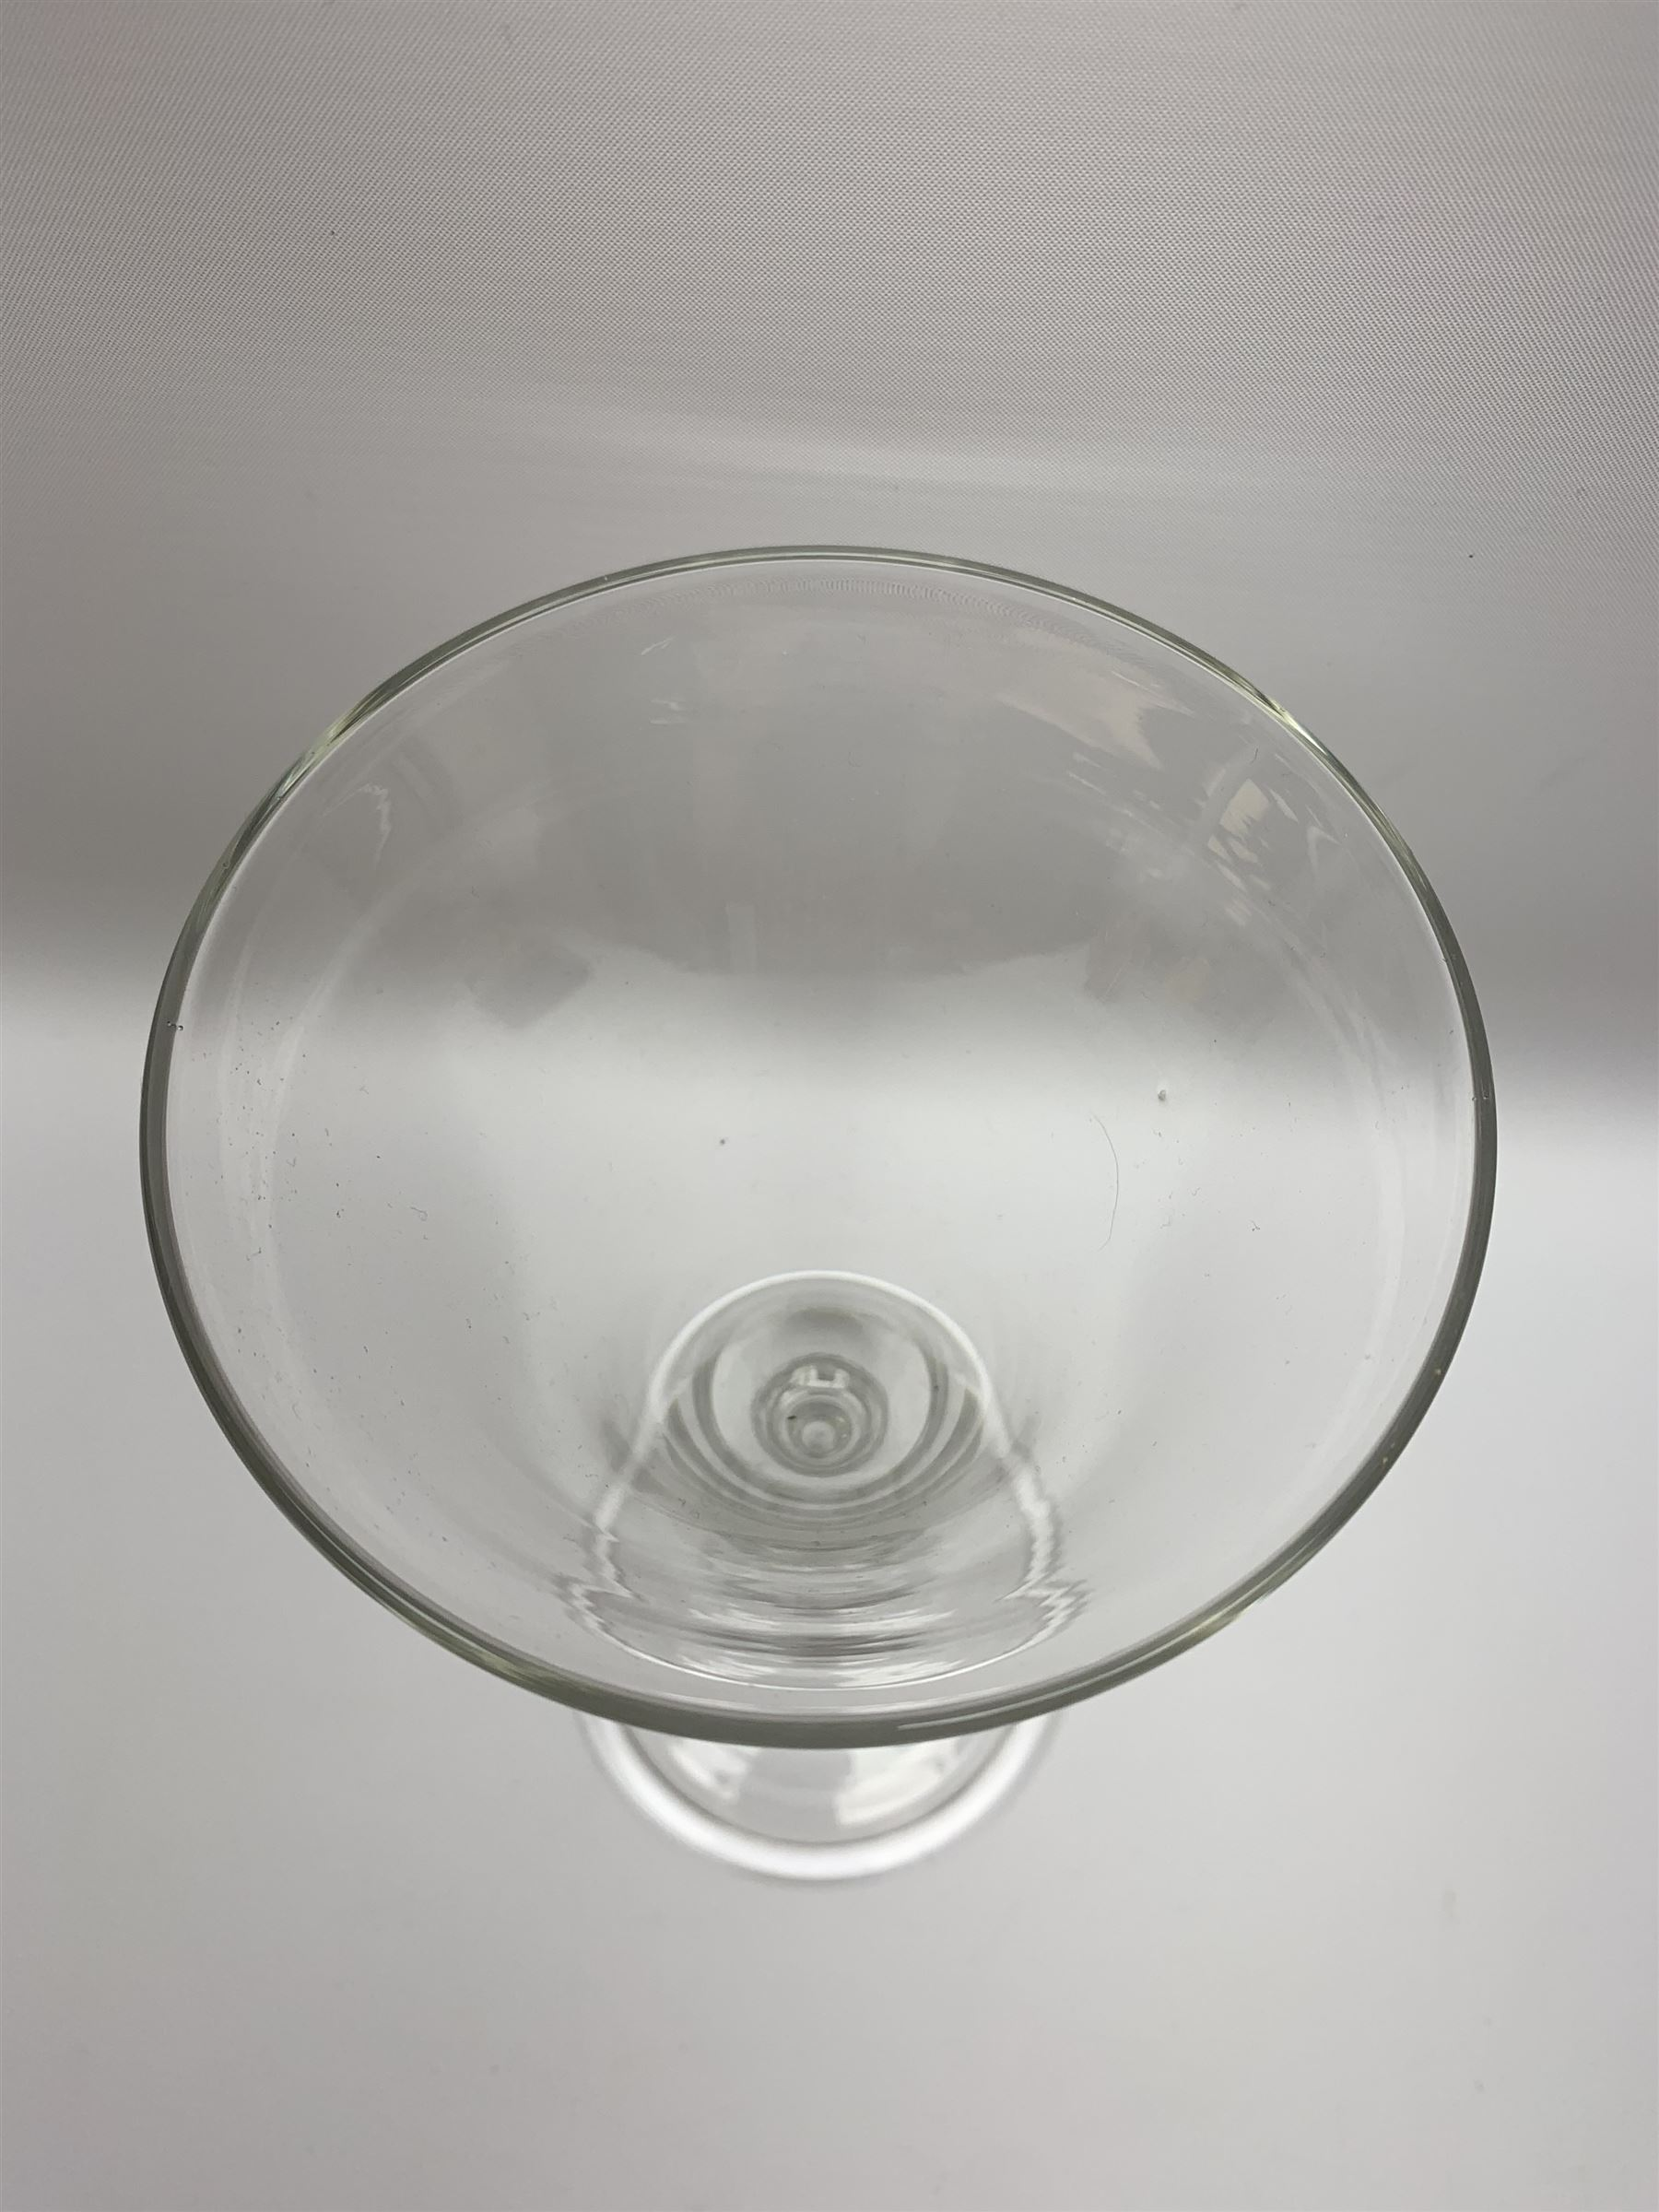 Large 18th century style drinking glass - Image 2 of 4